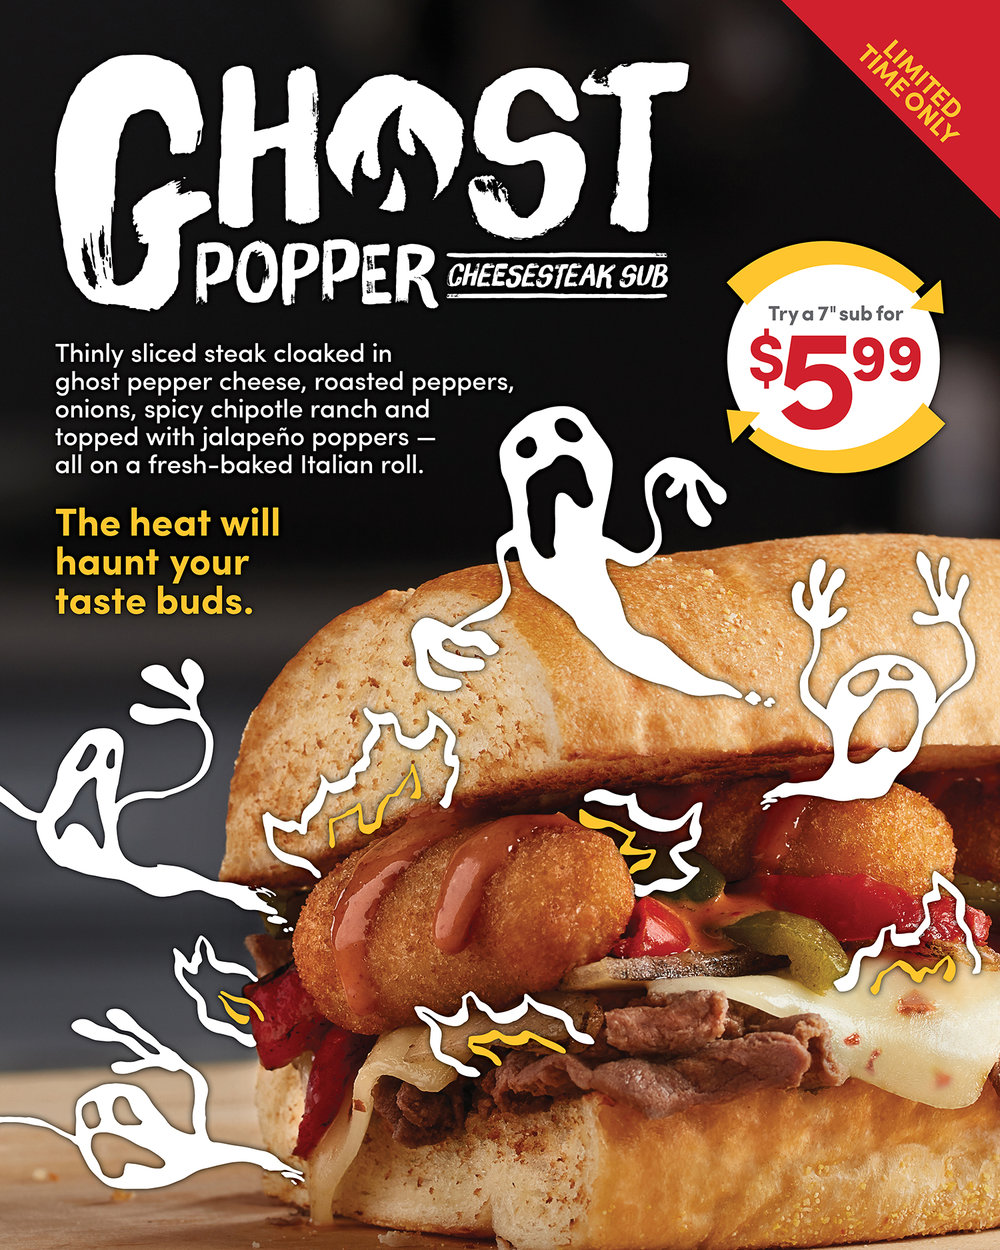 Ghost Popper Cheesesteak Sub